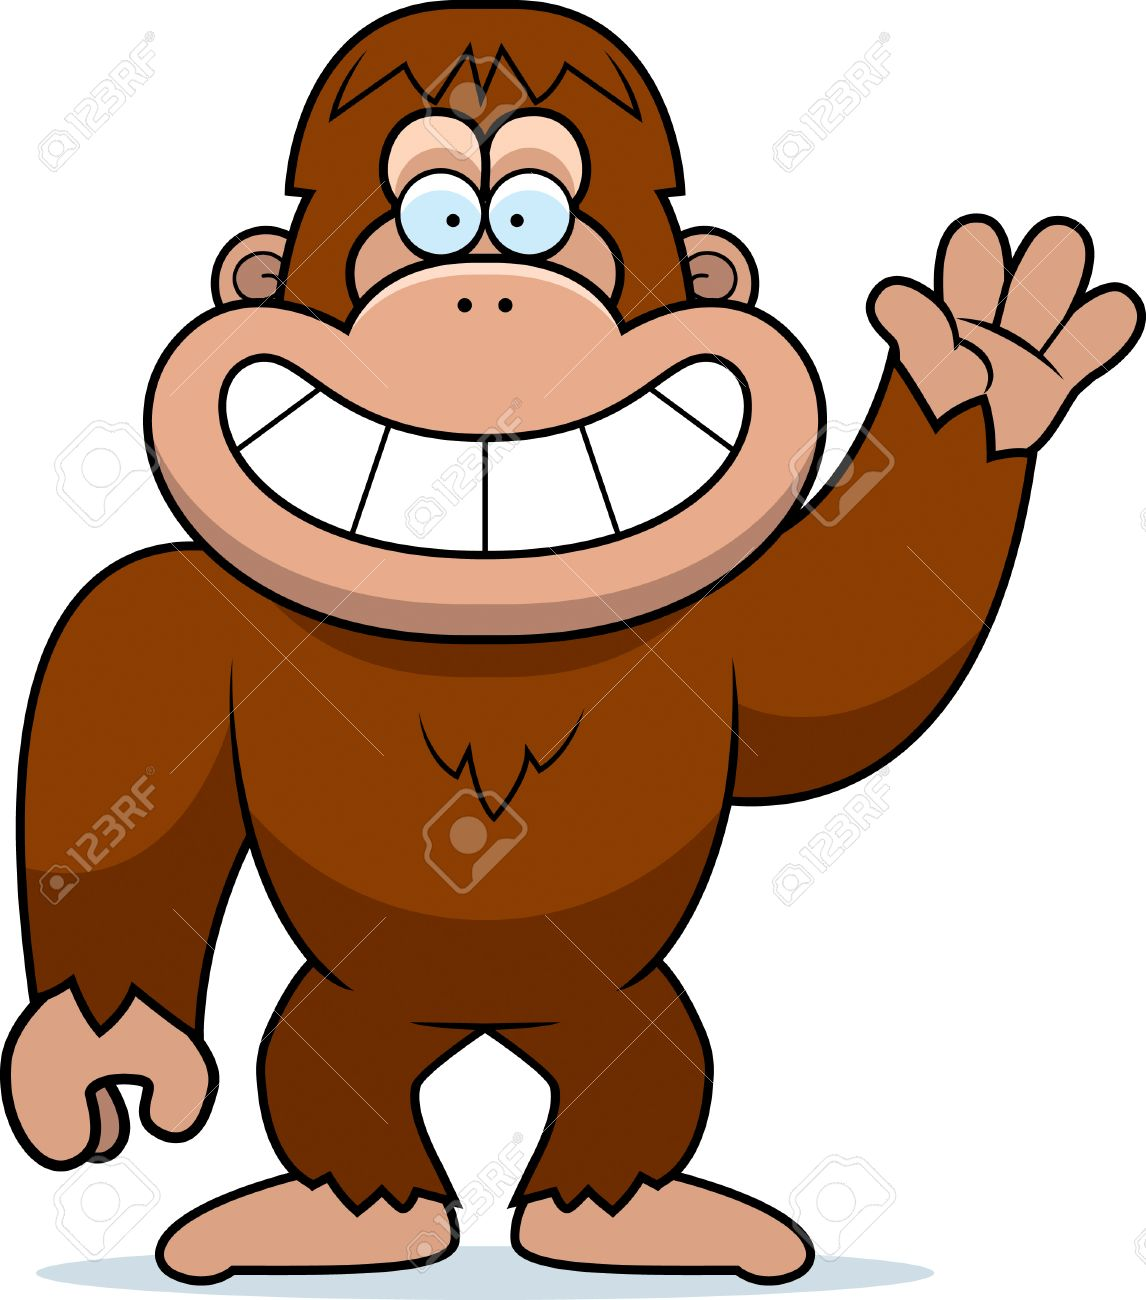 a cartoon illustration of a bigfoot waving royalty free cliparts rh 123rf com bigfoot feet clipart